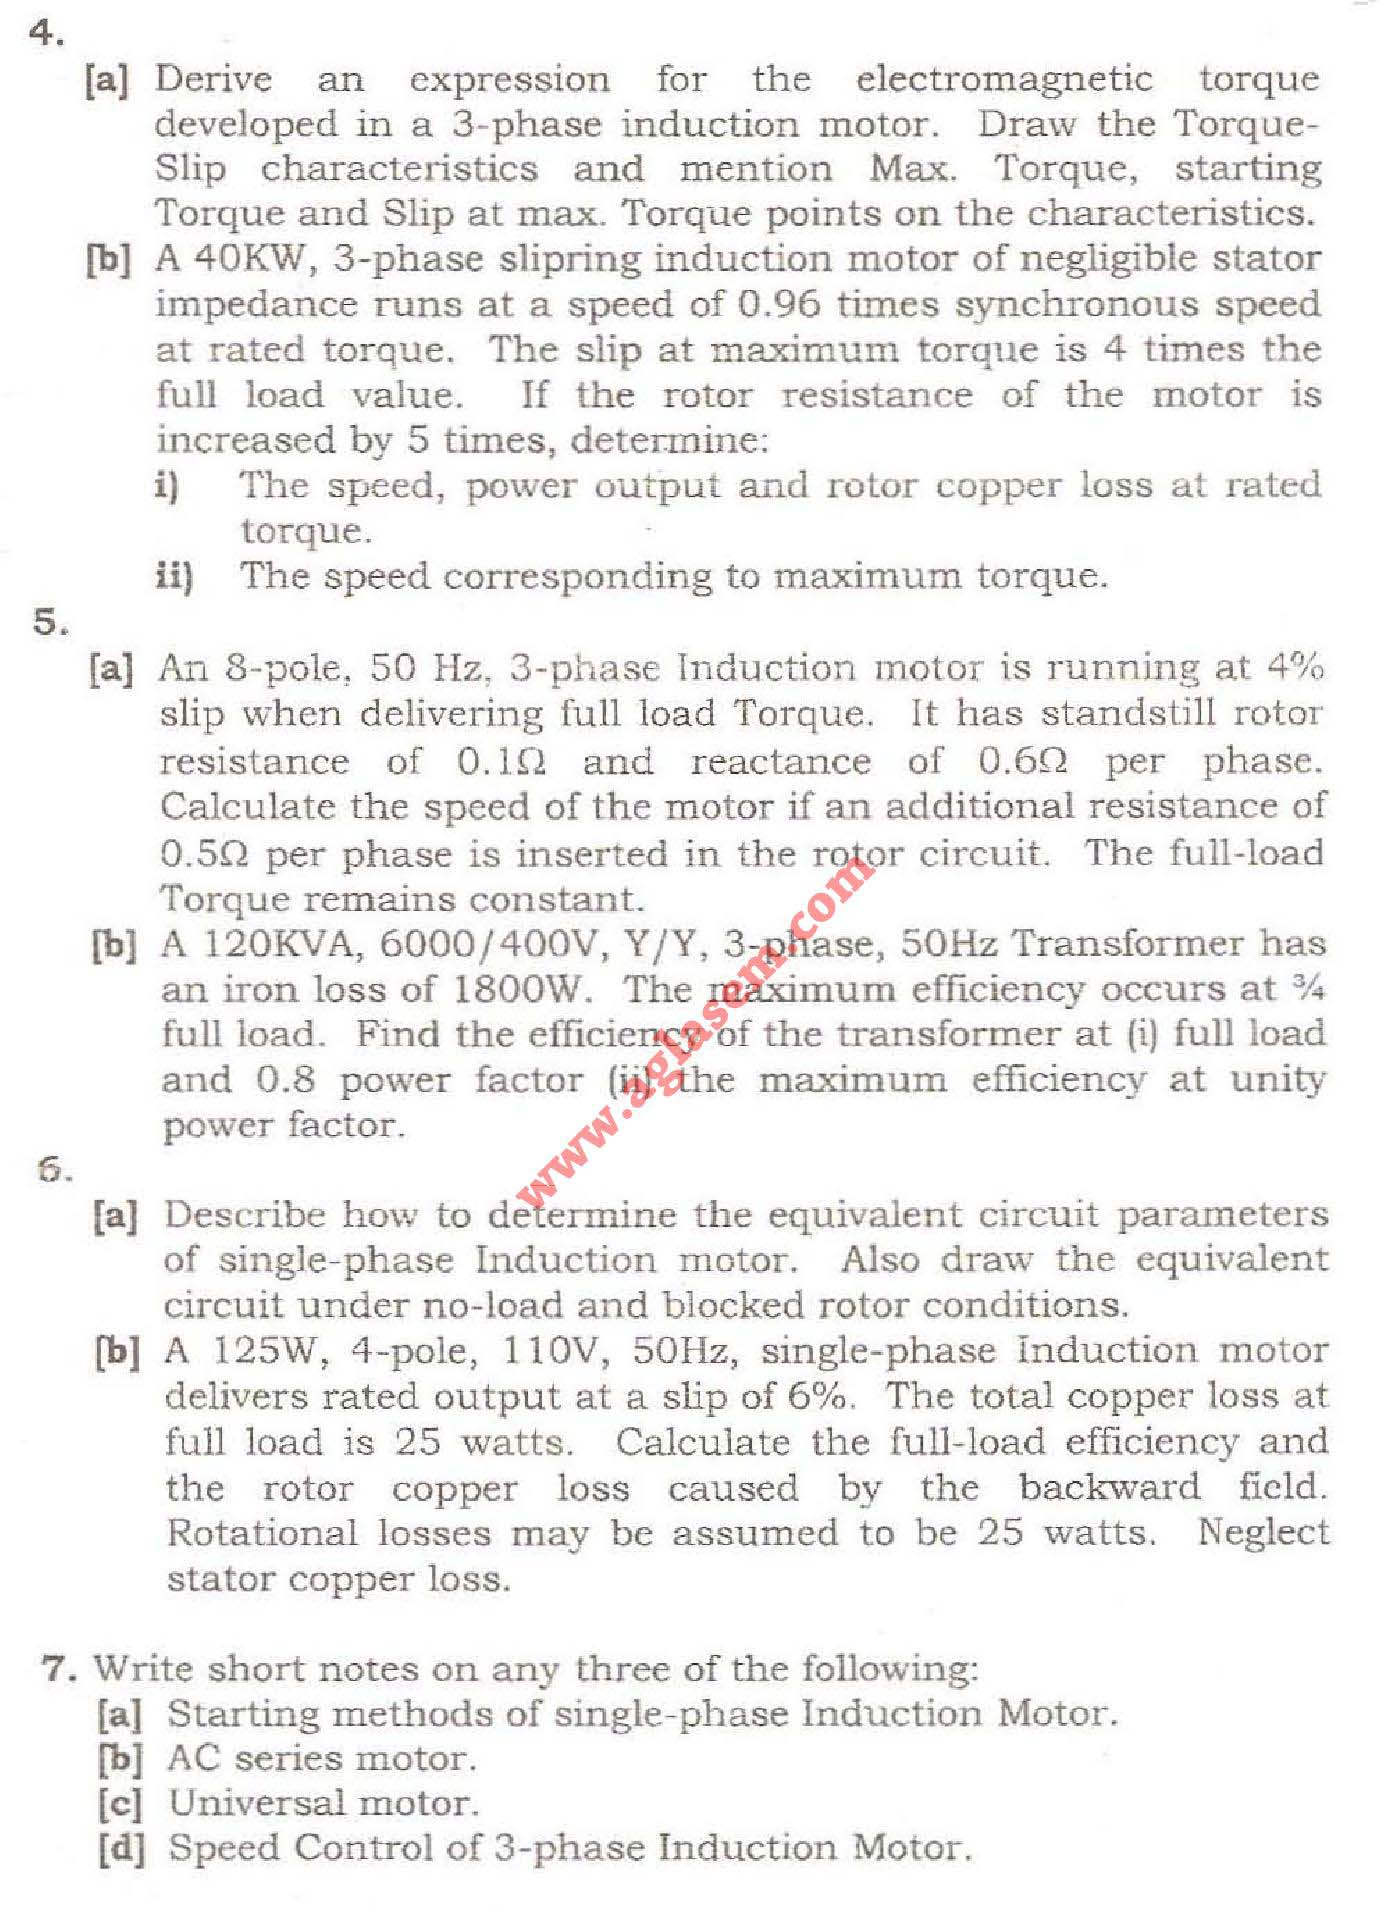 NSIT Question Papers 2008 – 3 Semester - End Sem - IC-203